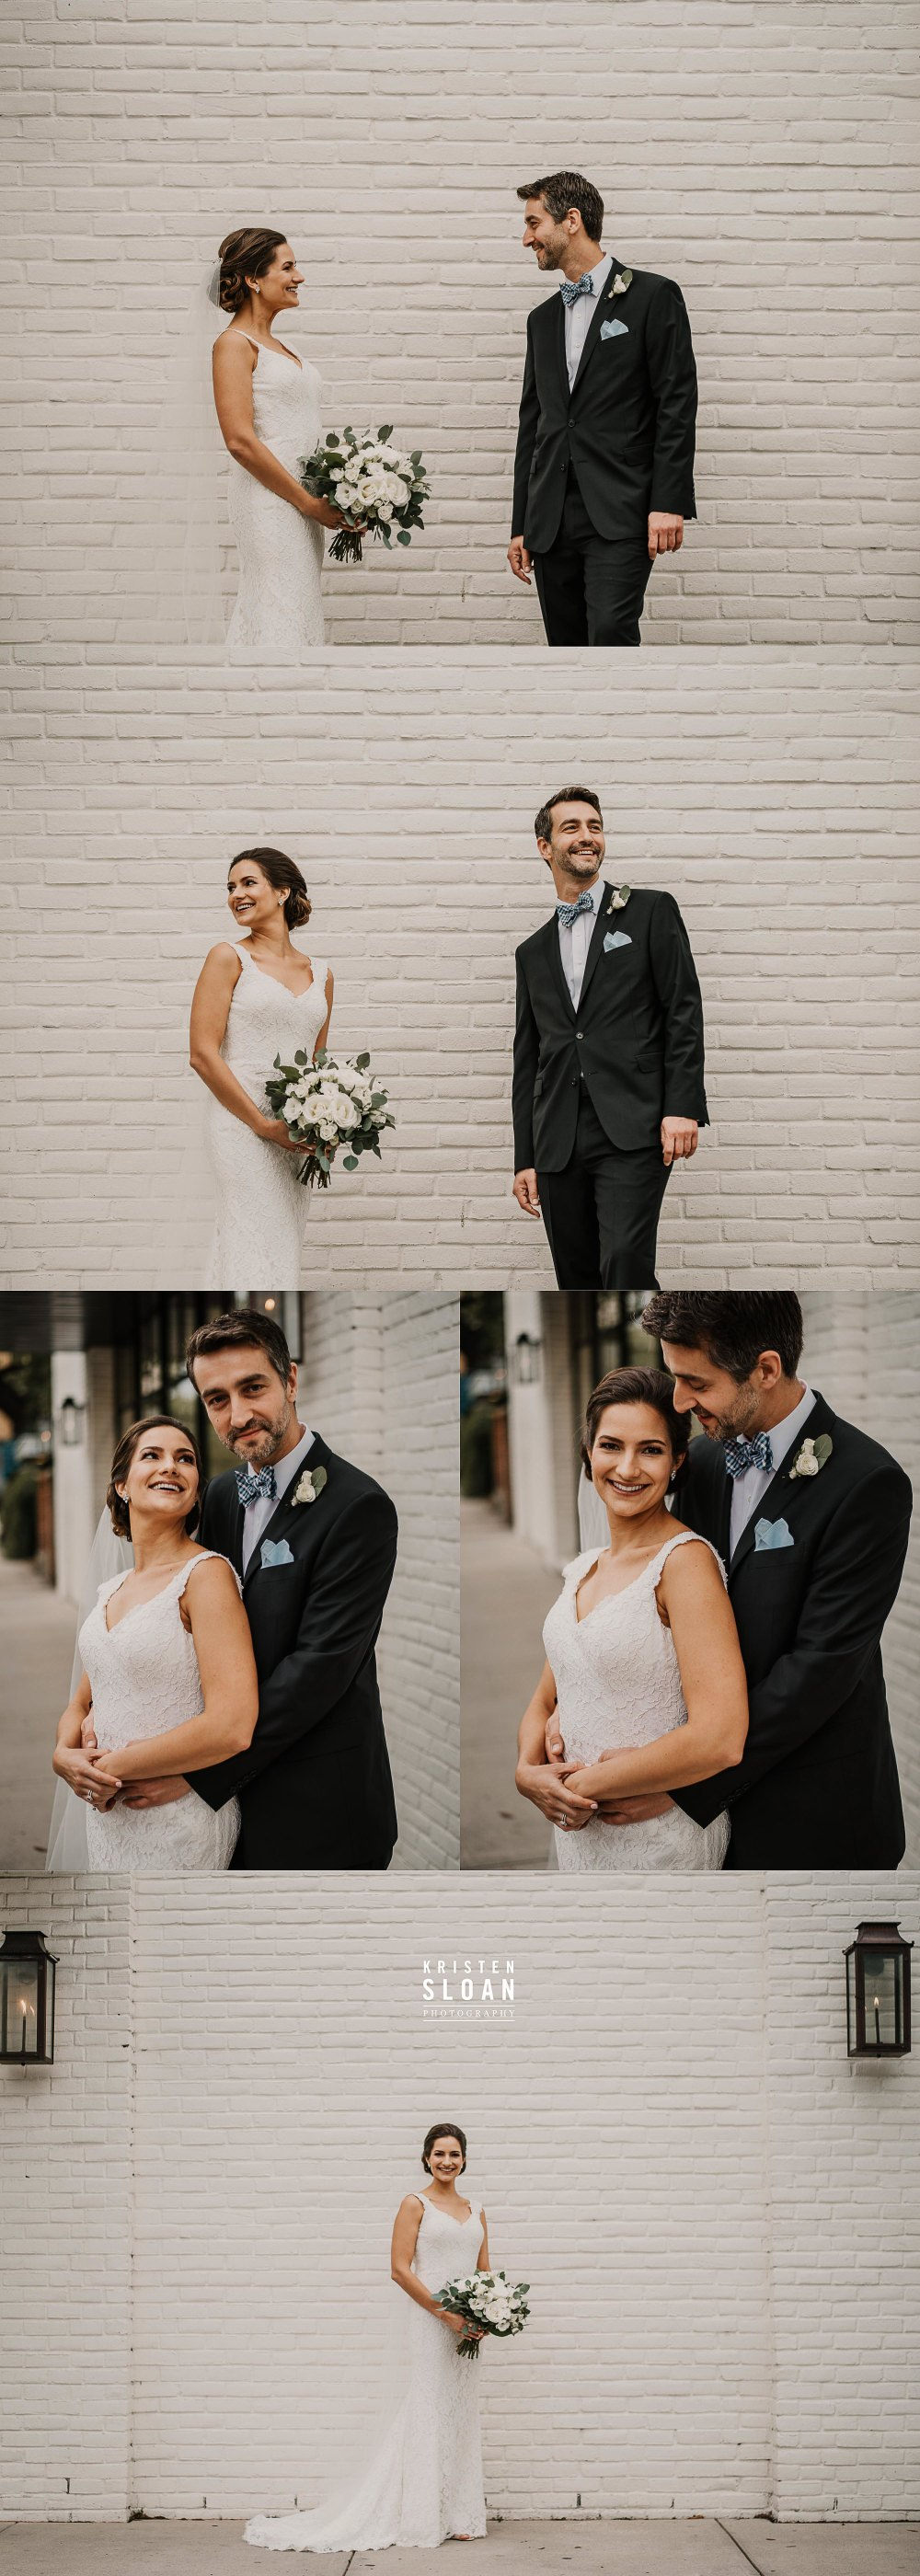 Oxford Exchange Tampa Wedding Bride Groom Portraits